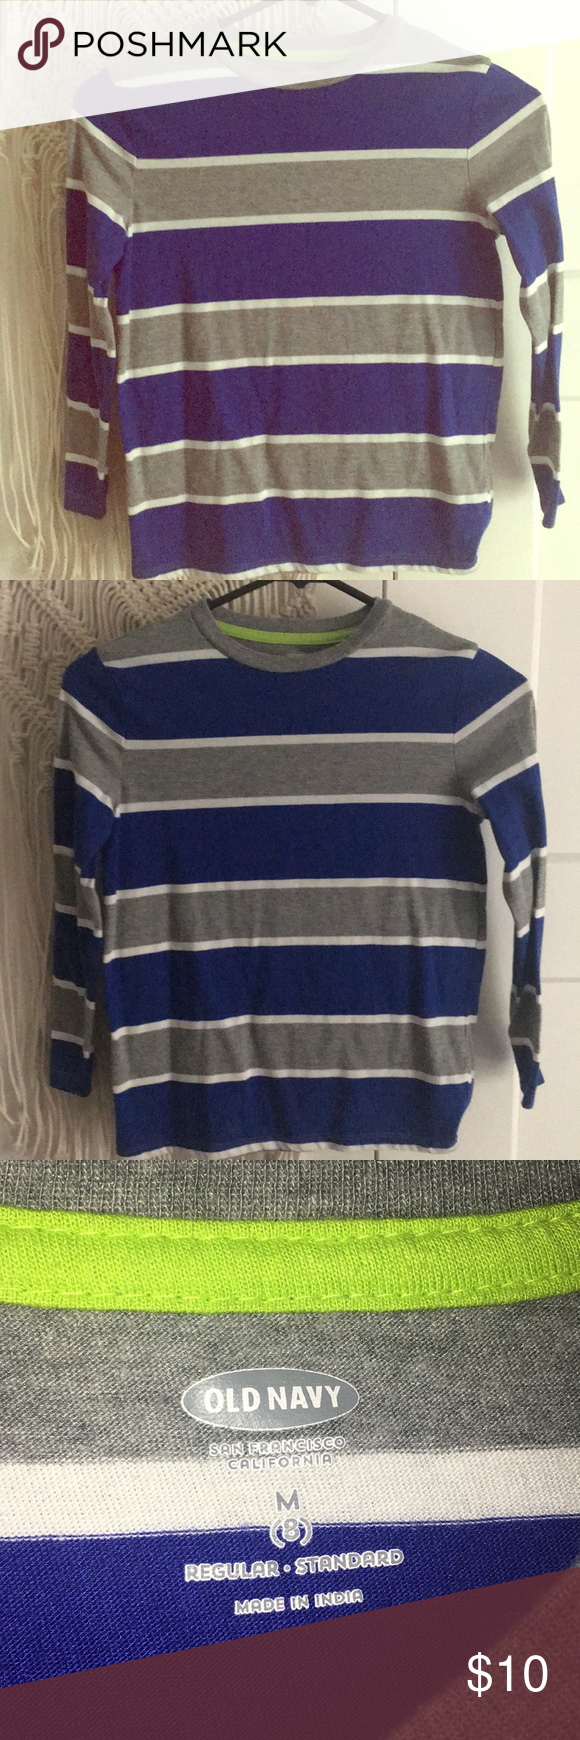 2f70e3cc1e LIKE NEW • Boys Long-Sleeve Shirt 🔹Old Navy Boys Striped Long-Sleeve Shirt  • Like new condition • Size M (8) • Blue, gray, and white stripe pattern •  Worn ...